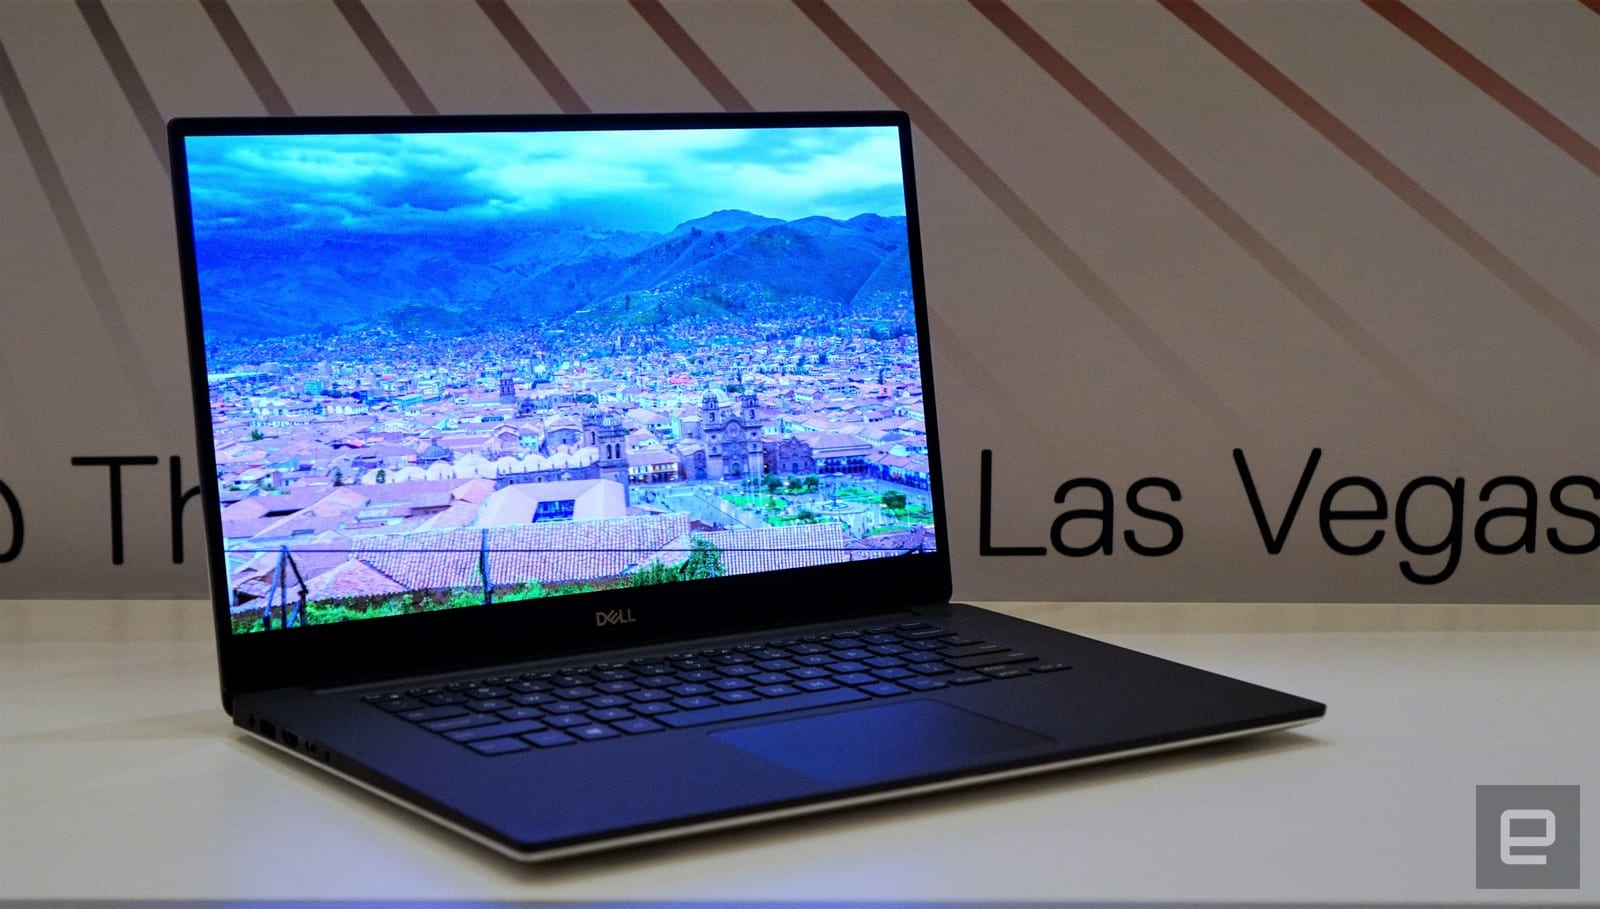 XPS 15 9570 - OLED 4k confirmed for March 2019 | NotebookReview